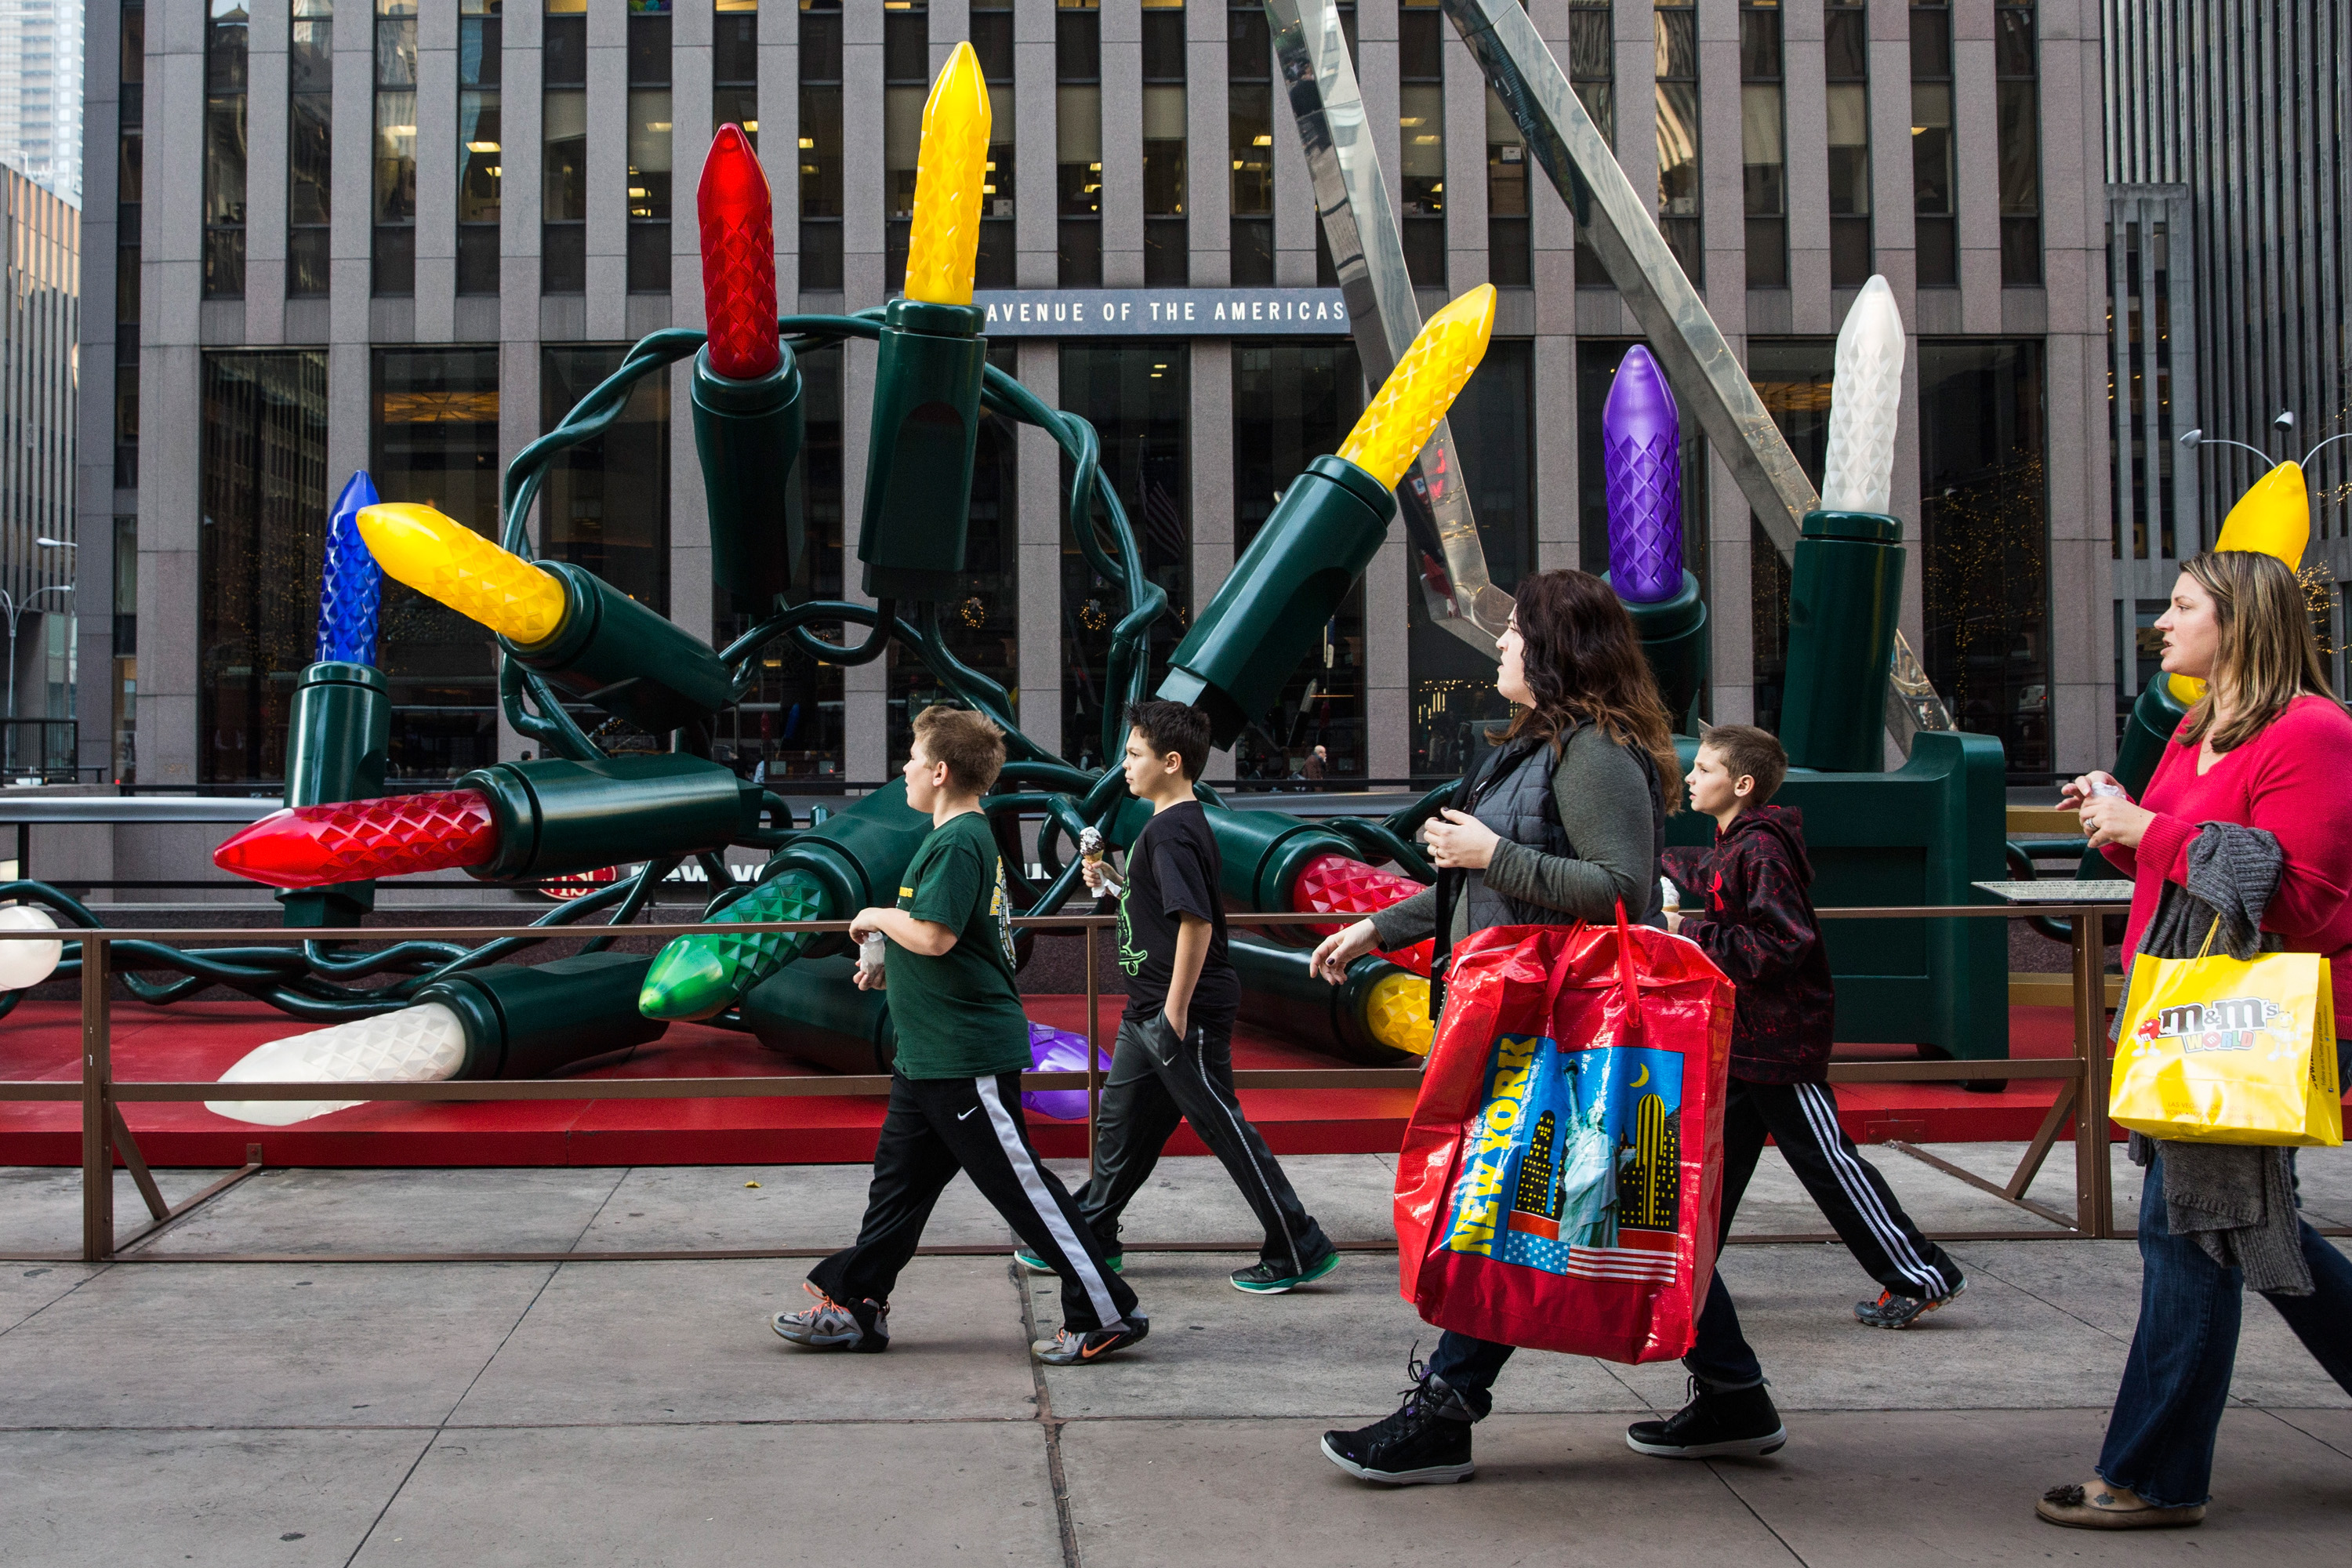 Children walk down Sixth Avenue wearing t-shirts thanks to 60 degree weather on Dec. 10, 2015 in New York City.